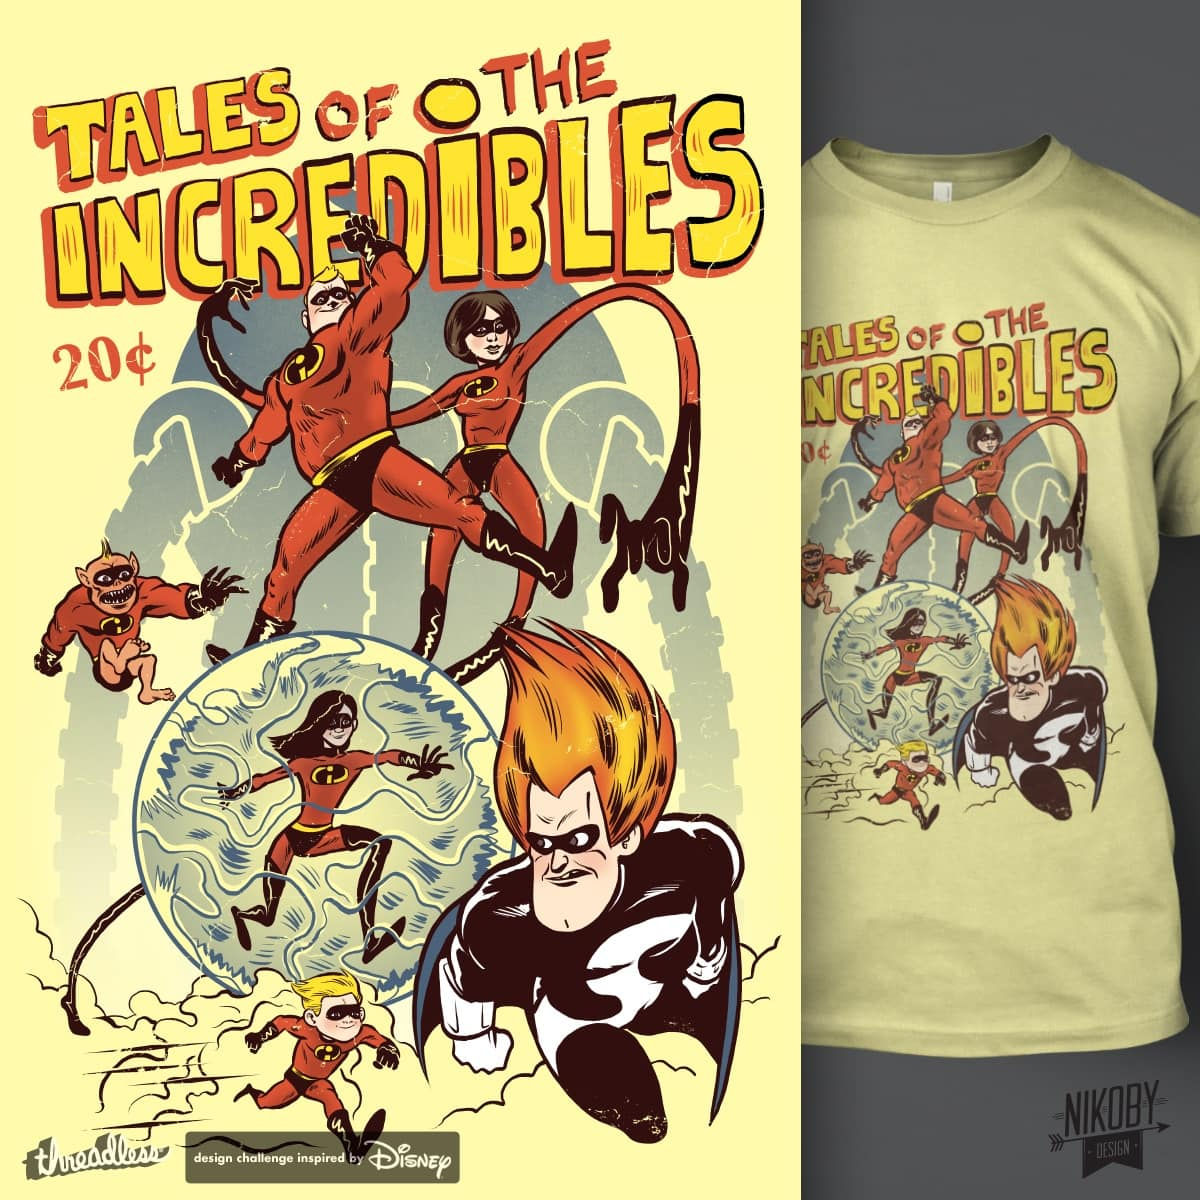 Tales of The Incredibles by nikoby on Threadless